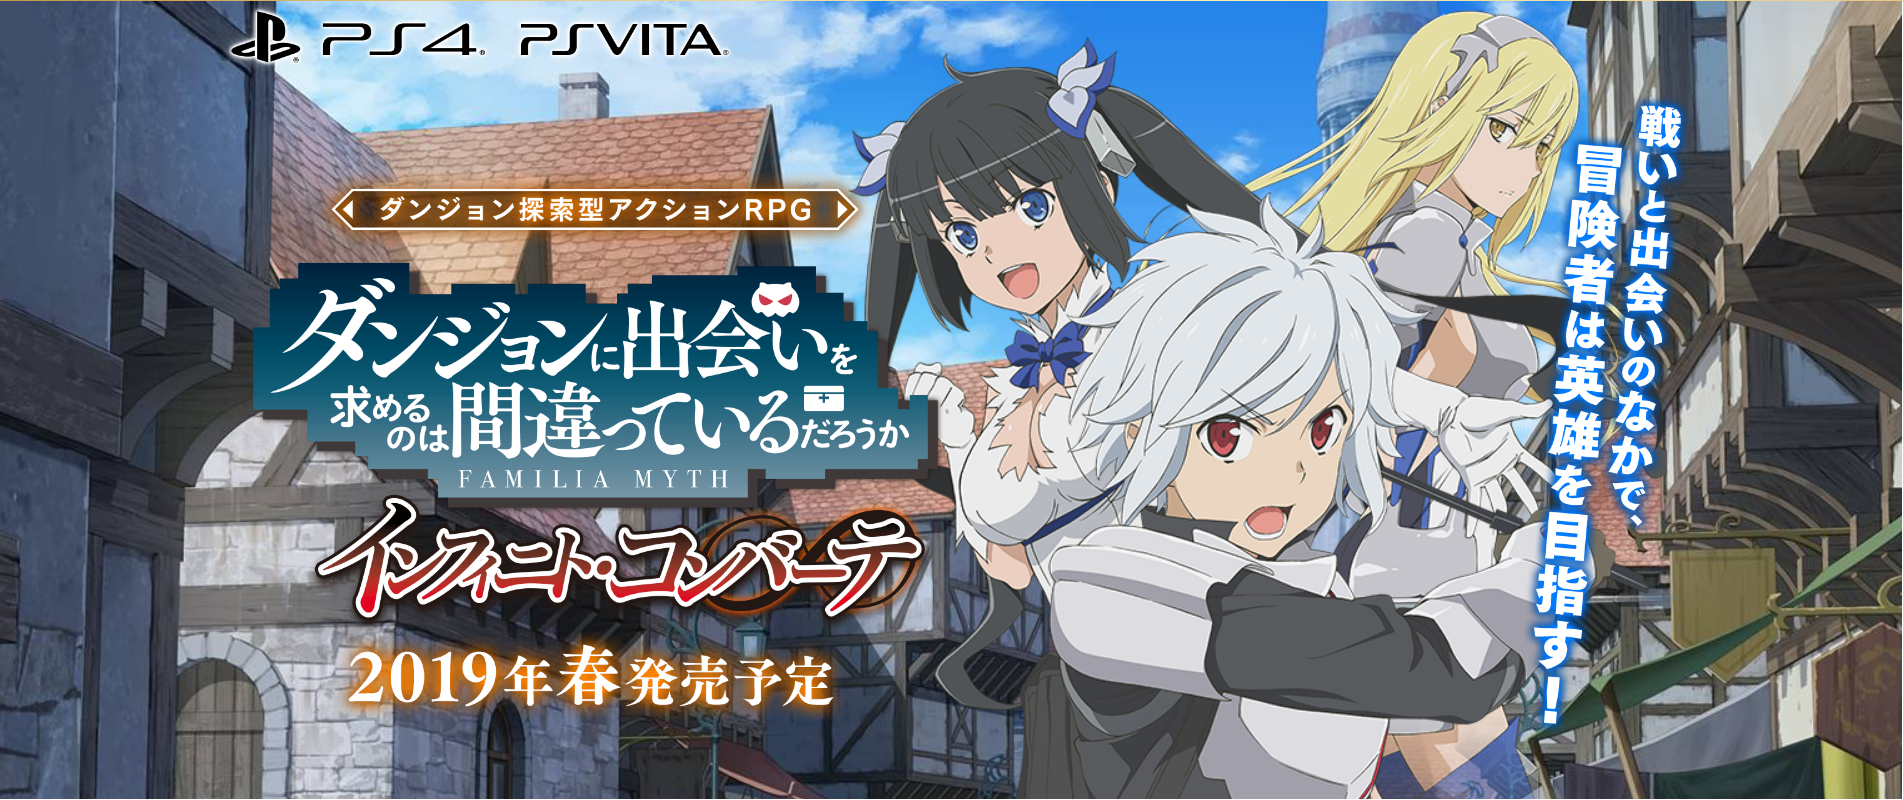 Свежий трейлер Is It Wrong to Try to Pick Up Girls in a Dungeon? Infinite Combate